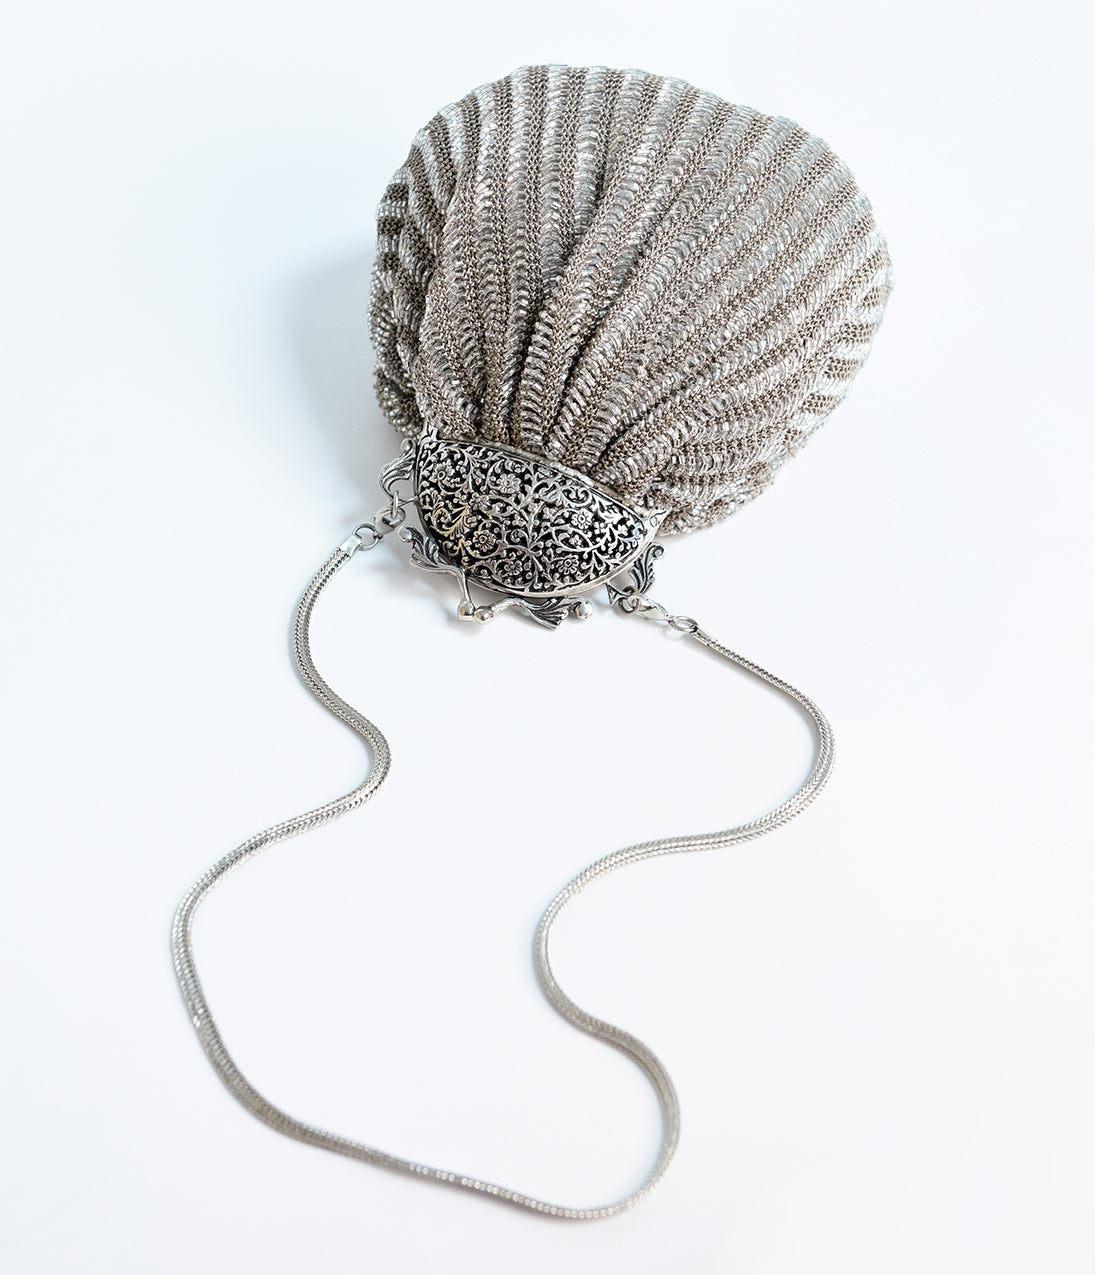 Vintage & Retro Handbags, Purses, Wallets, Bags Deco Style Silver Crochet Beaded Top Frame Clutch $118.00 AT vintagedancer.com